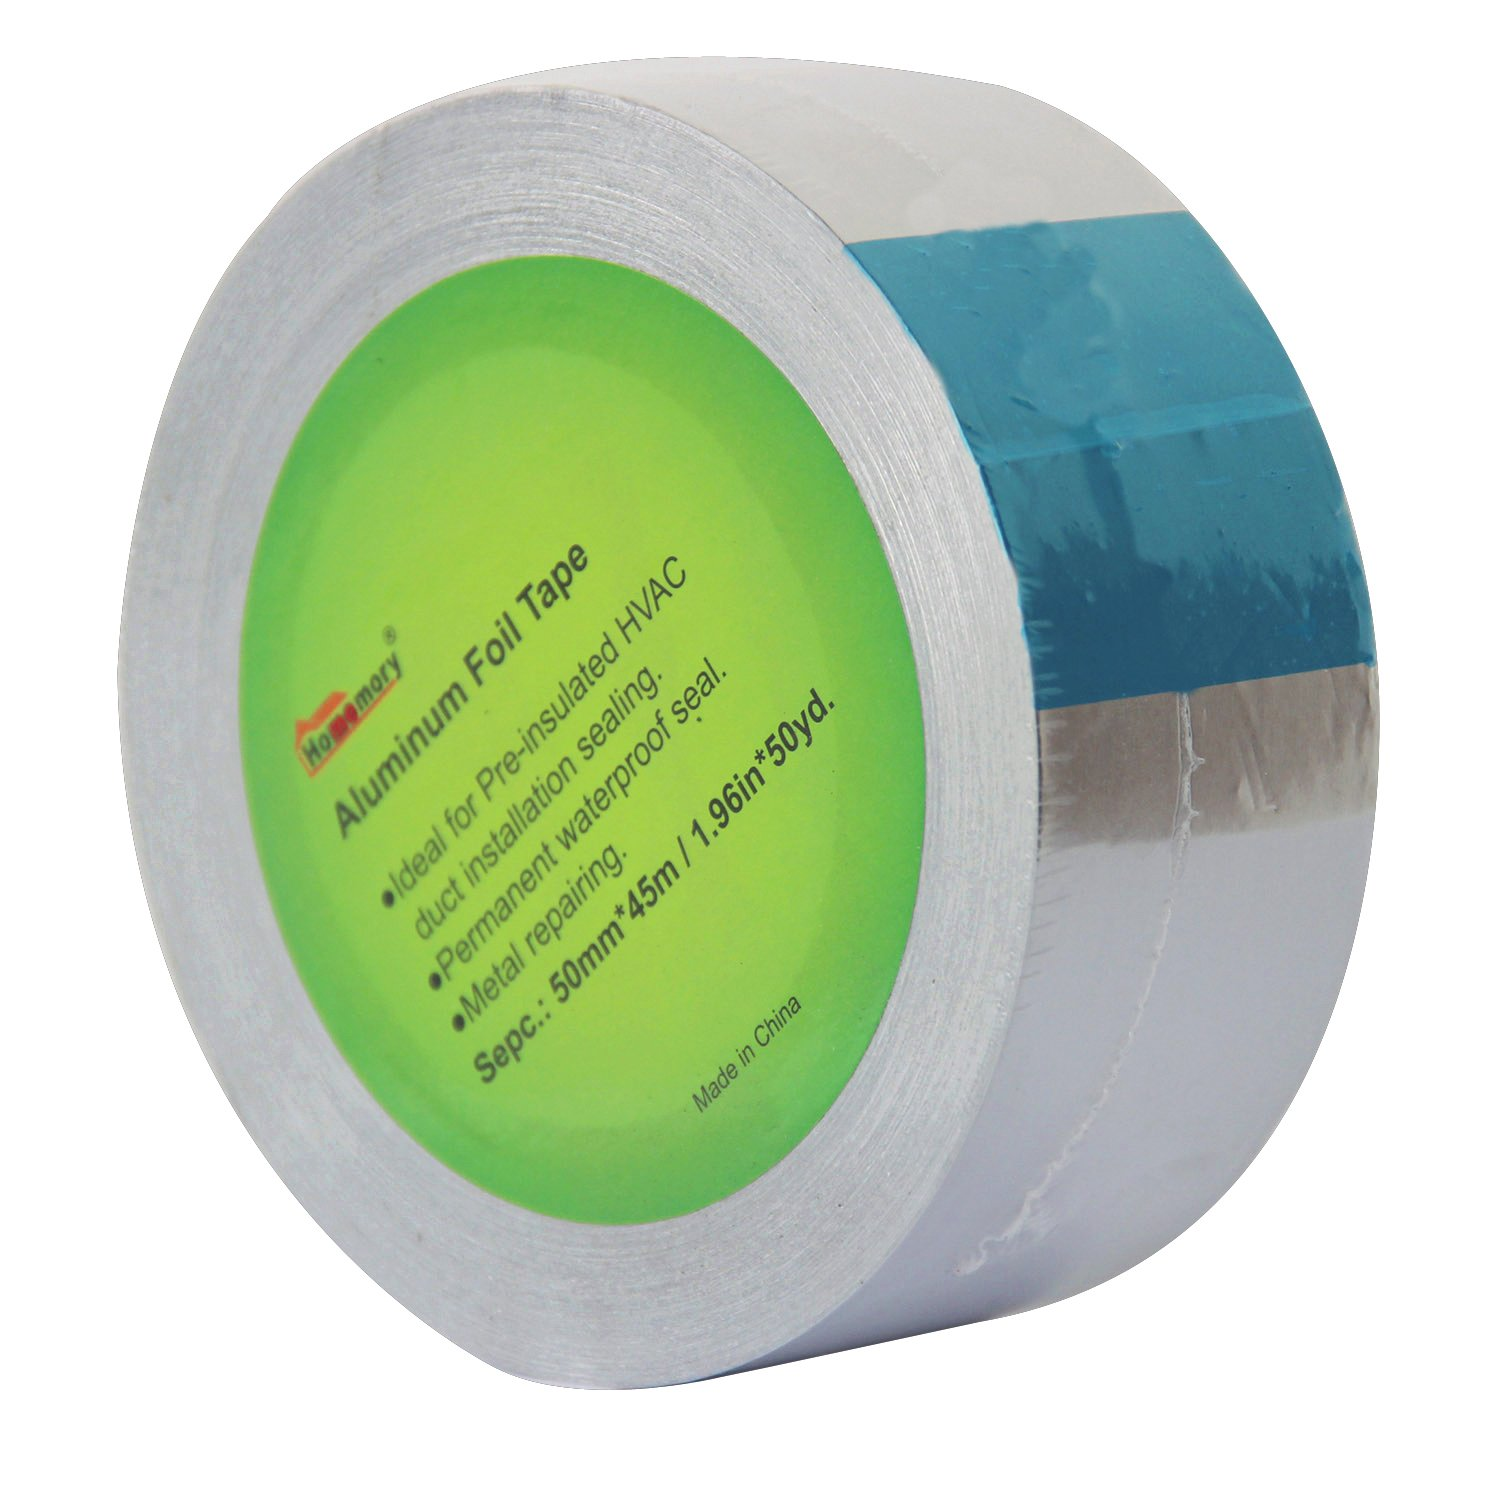 Homemory Aluminum Tape/Aluminum Foil Tape - 2 inch x 150 feet (3.2 mil) - Good for HVAC, Ducts, Insulation and More by Homemory